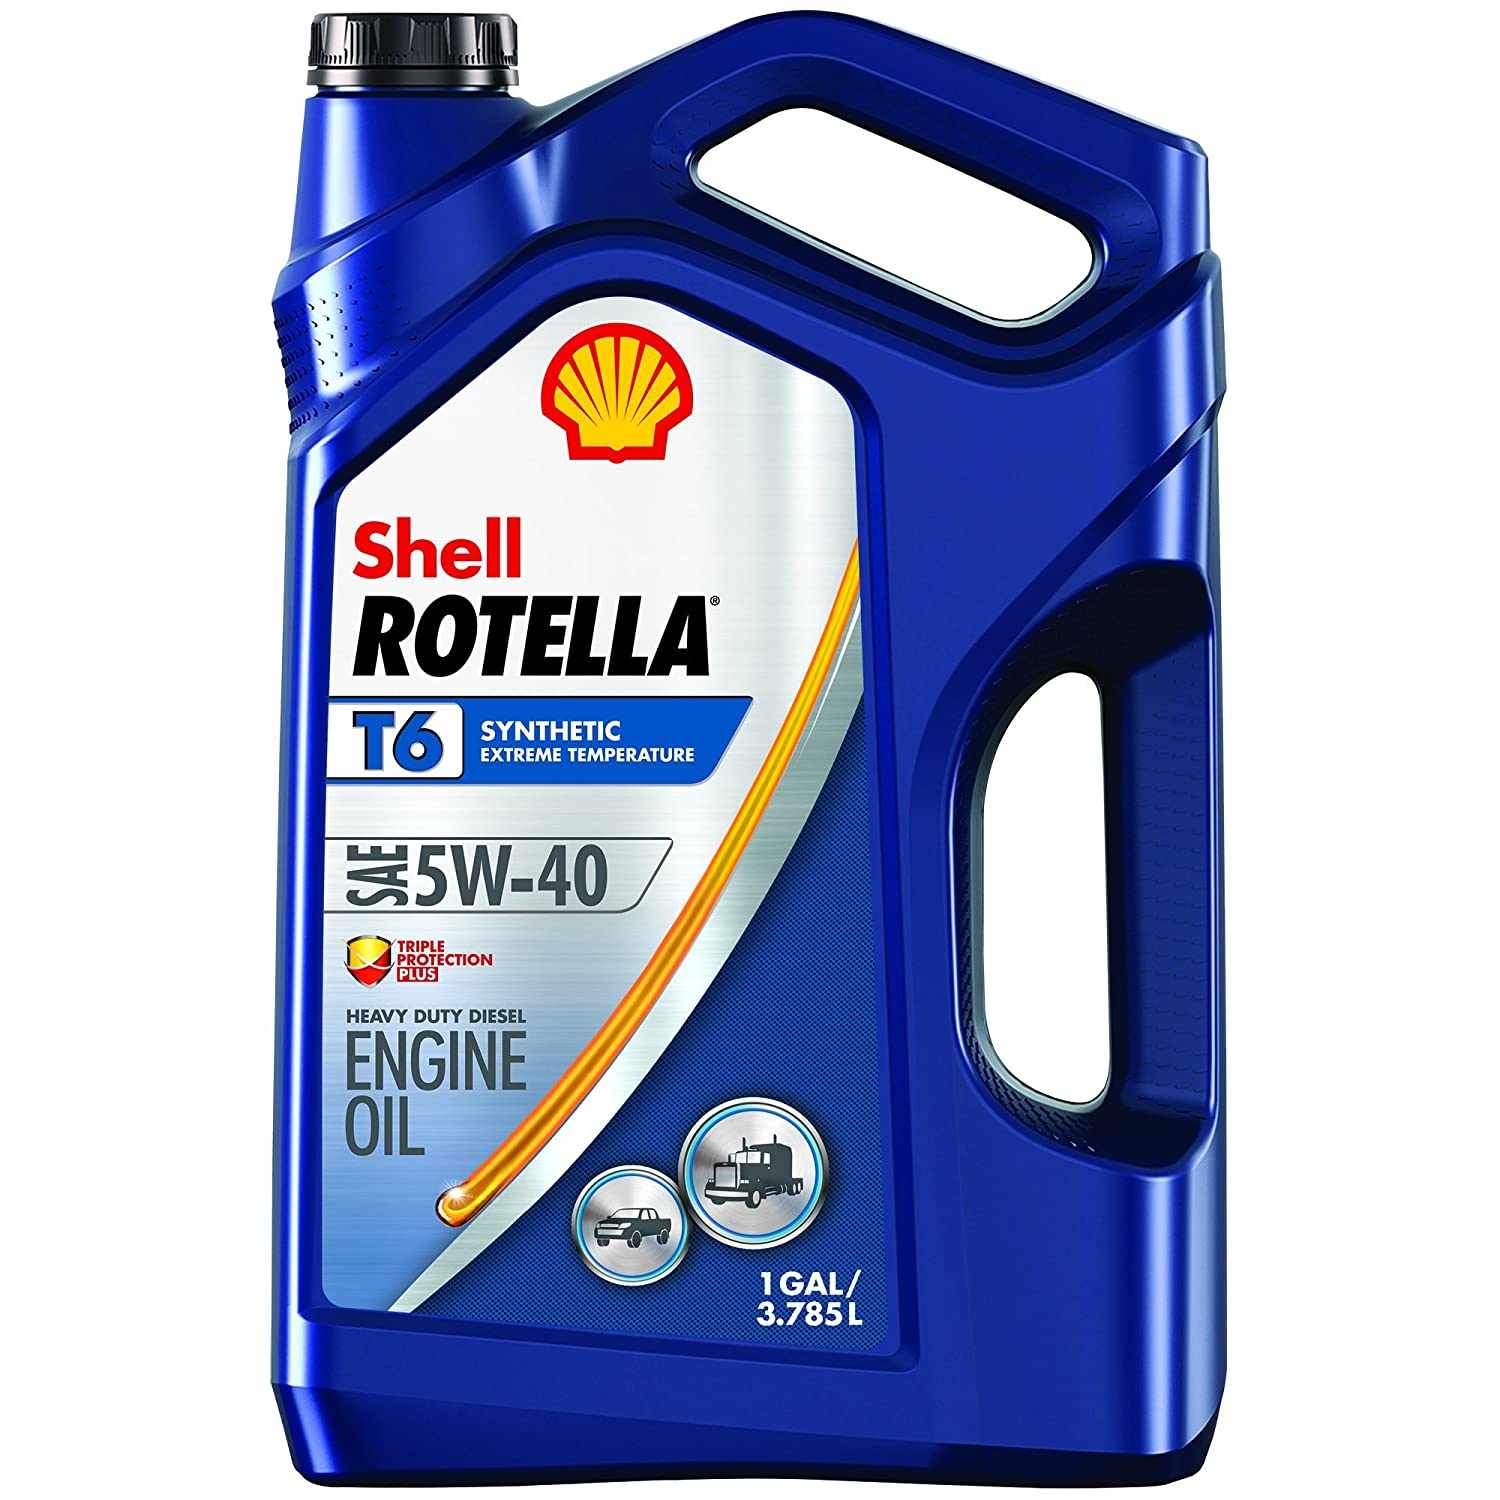 4. Shell Rotella 550045347 Synthetic Motor Oil (5W-40 CJ-4), 128. Fluid_Ounces